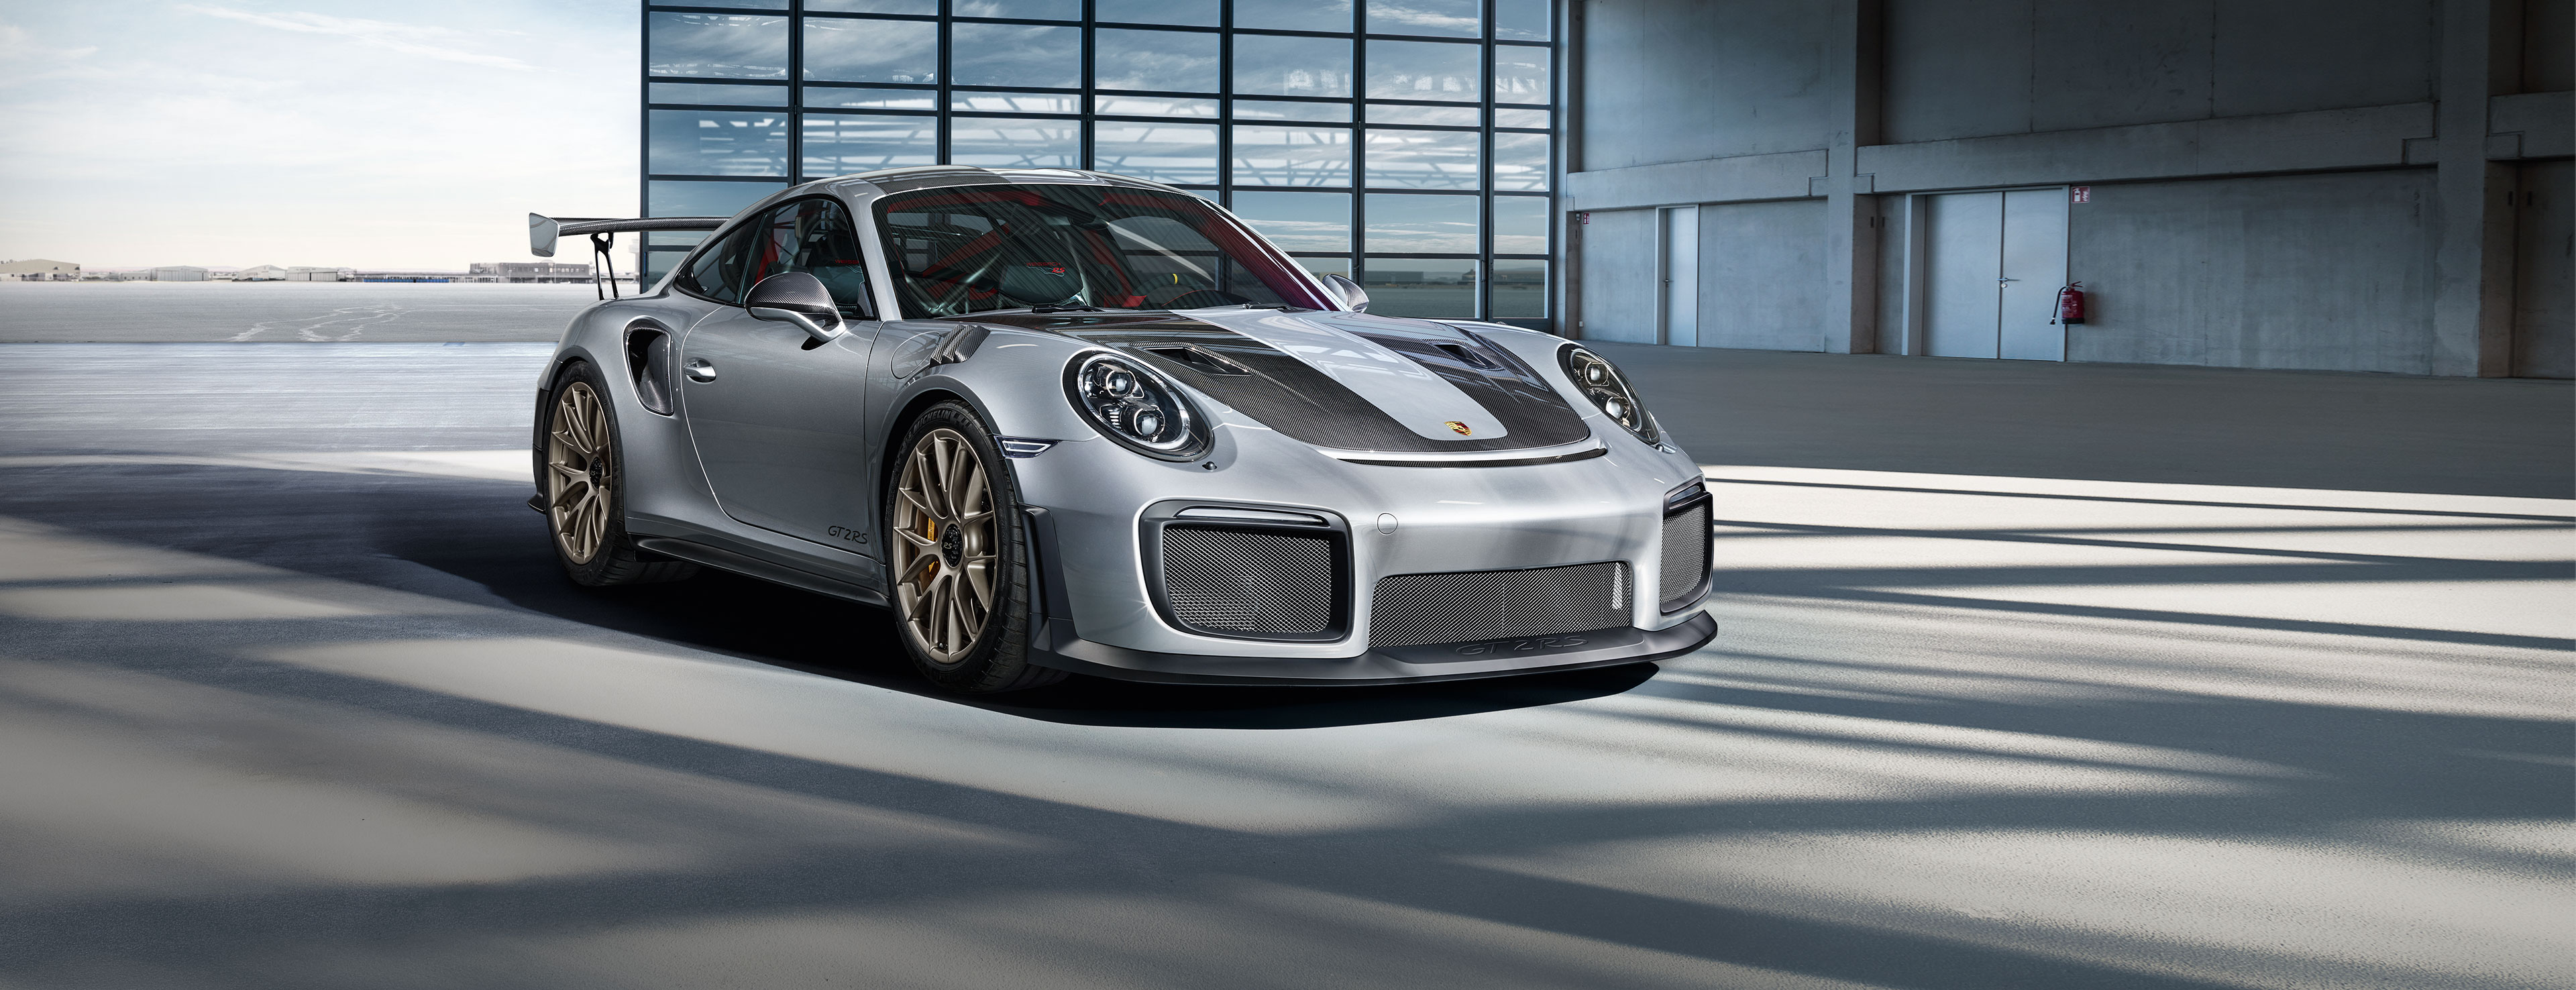 The iconic Porsche 911 GT2 RS returns after a six-year hiatus